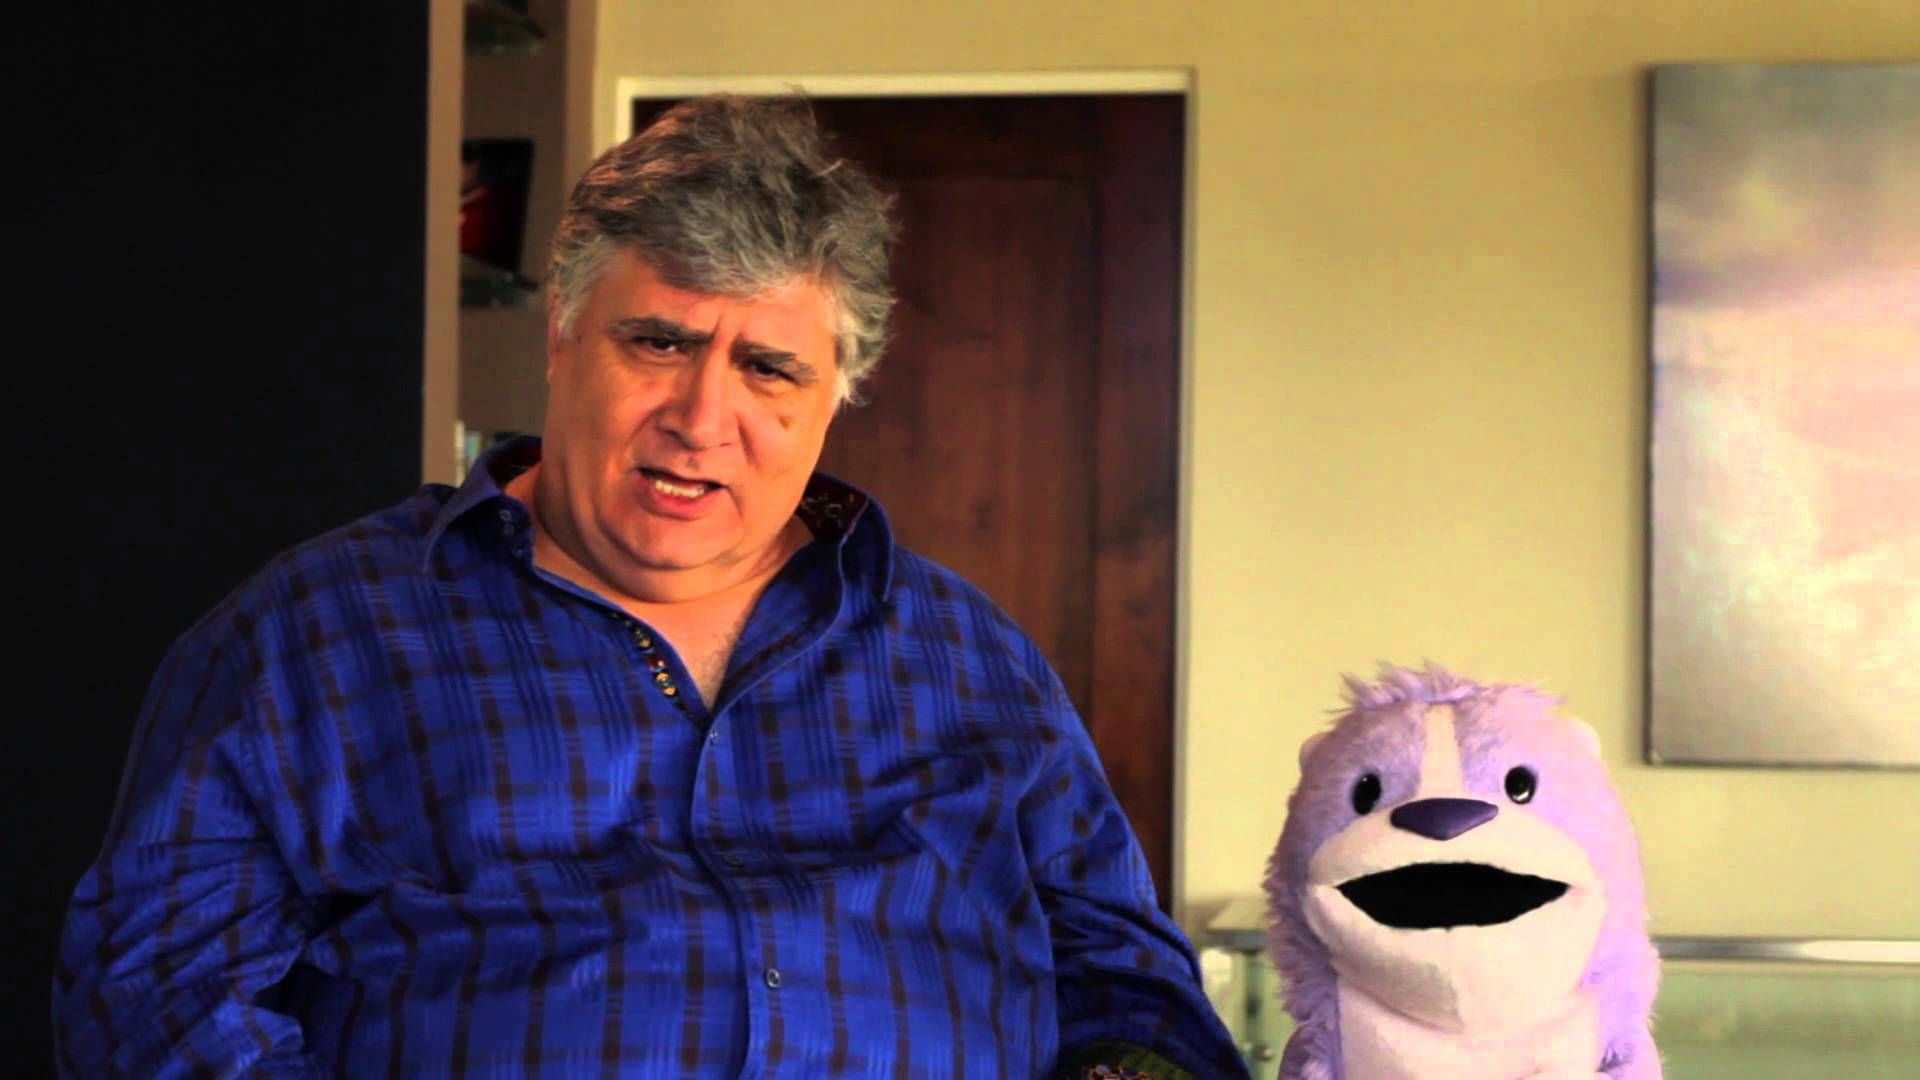 Maurice LaMarche nudes (92 foto and video), Tits, Cleavage, Selfie, butt 2018